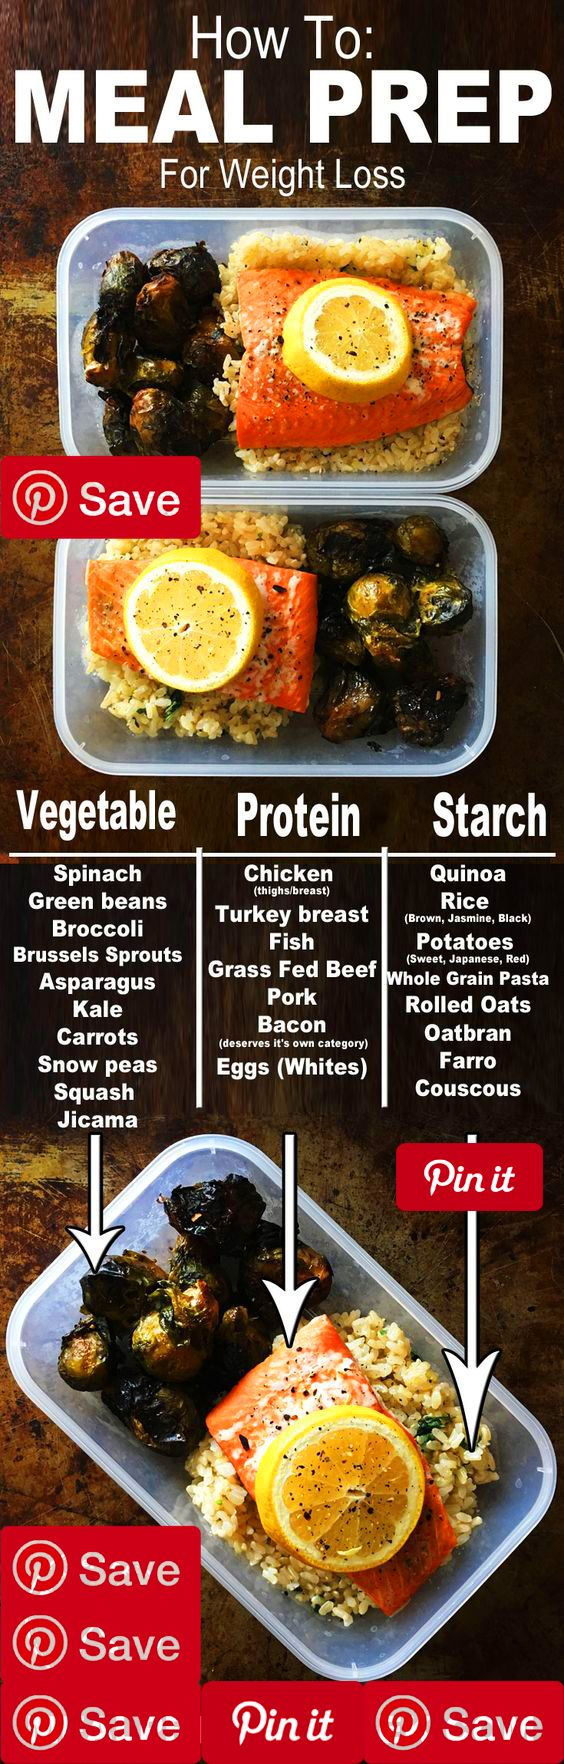 Meal Prep 101 For Beginners How To Meal Prep : The Perfect 3 Ingredient Meal Prep Template Step 1: Plan Your Meals Make sure each meal includes a balance of more easys